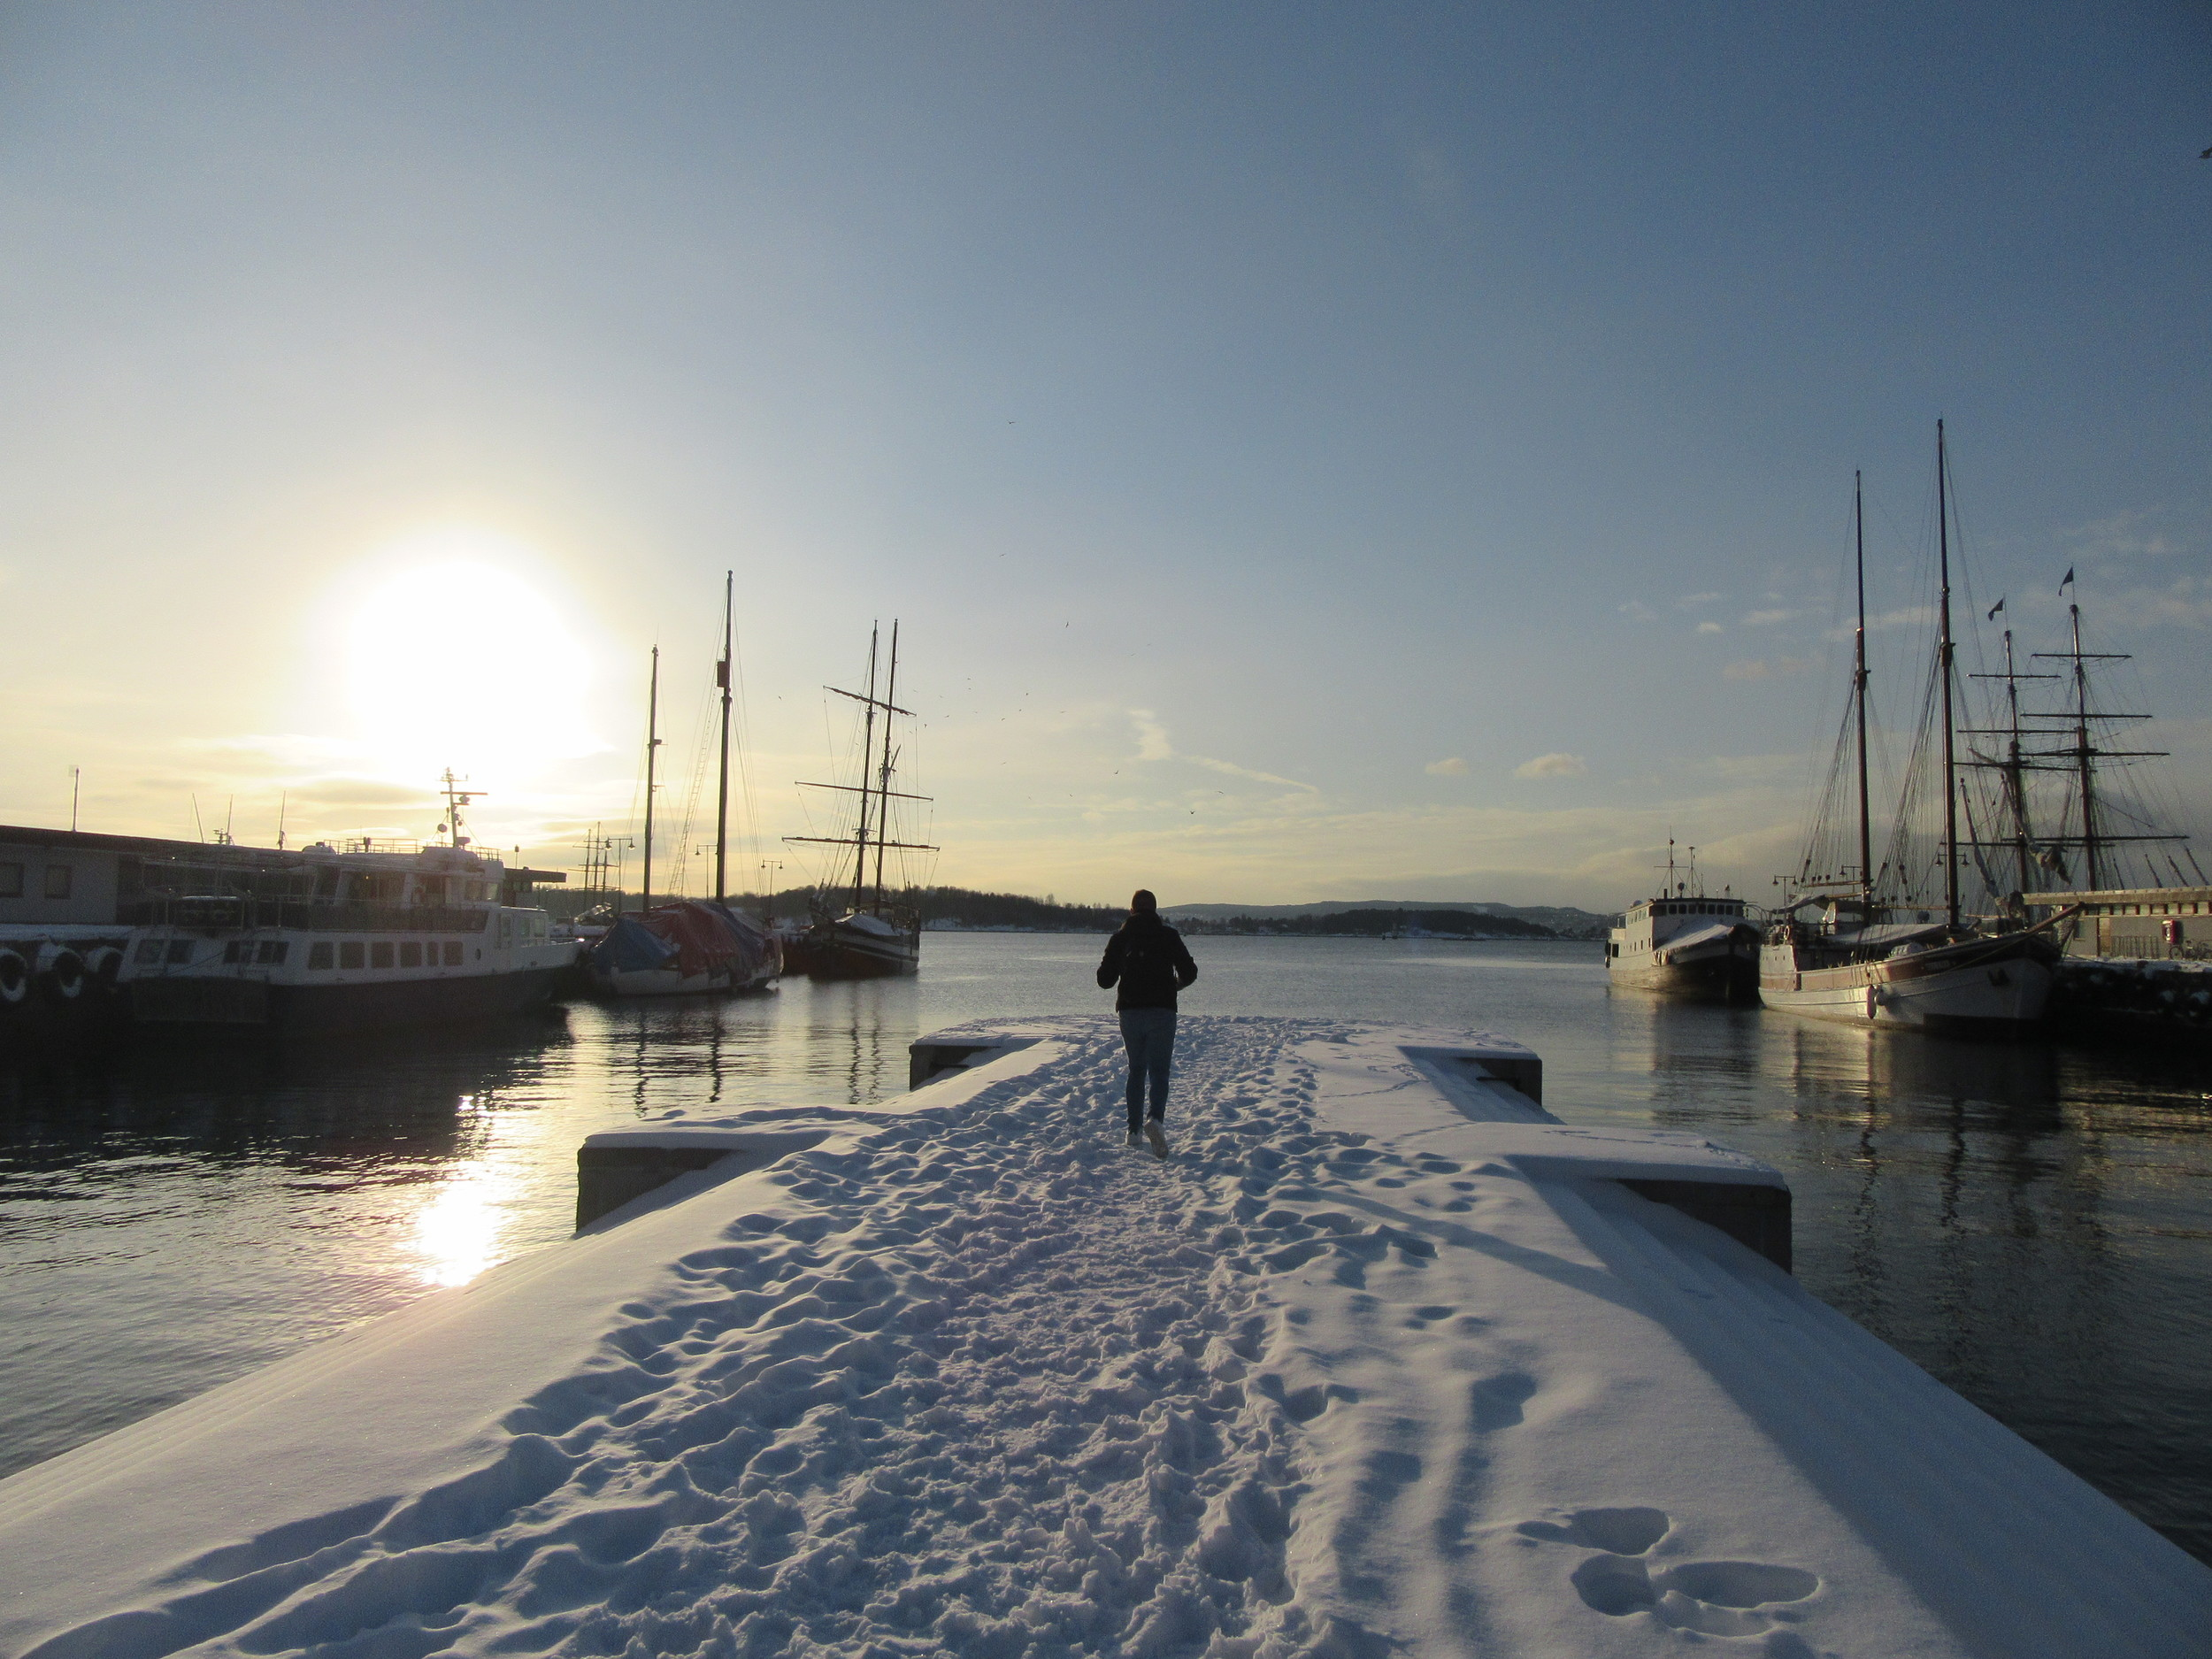 Heading off towards the sunrise in Oslo, Norway.